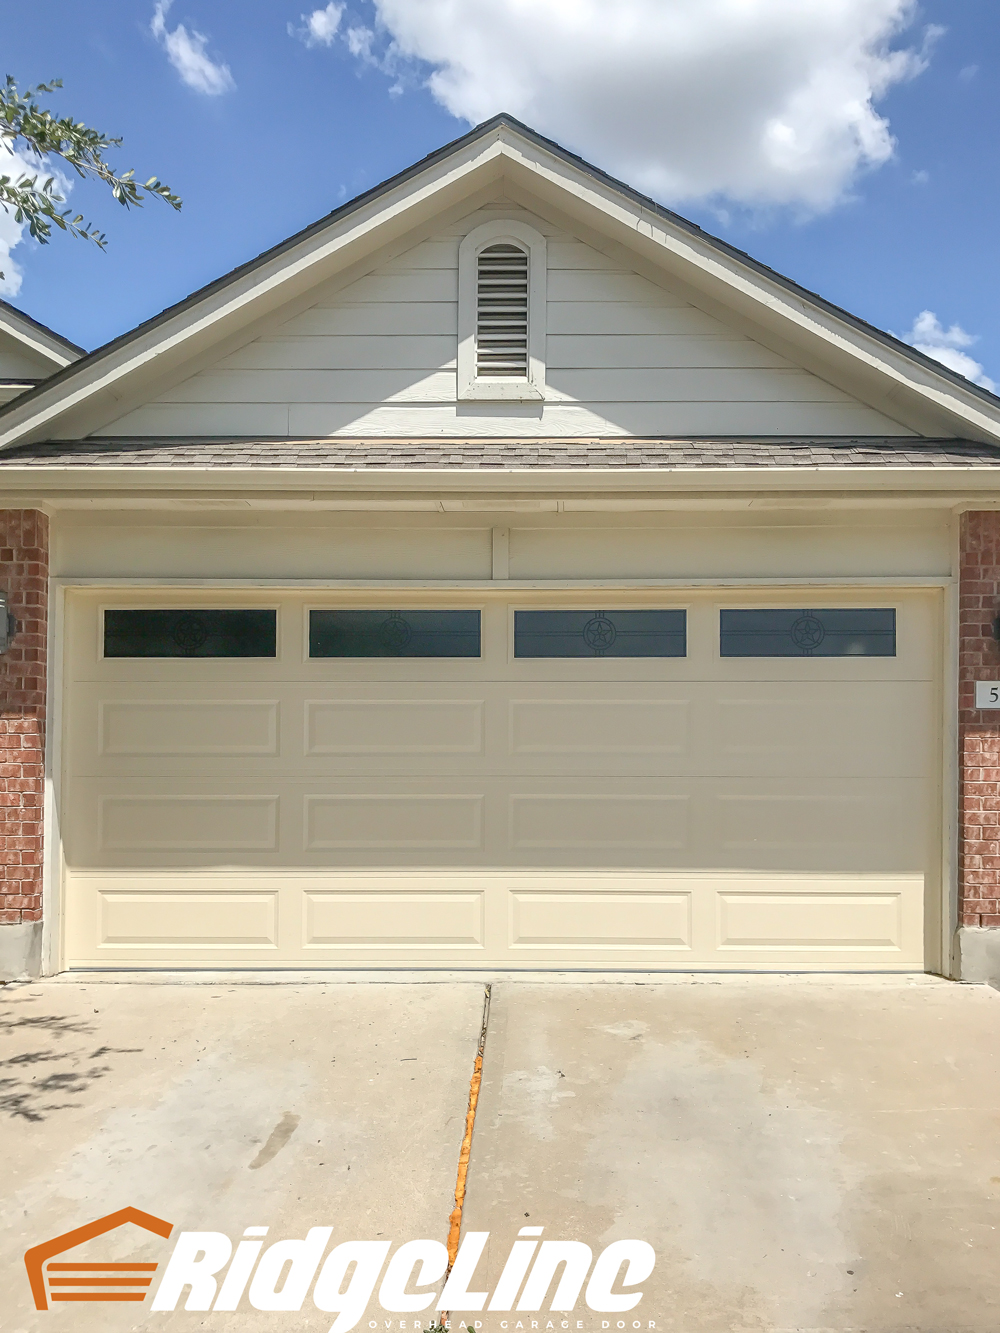 16x7 Amarr Stratford 3000 Long Panel Almond Americana Glass  RidgeLine  Overhead Garage Door